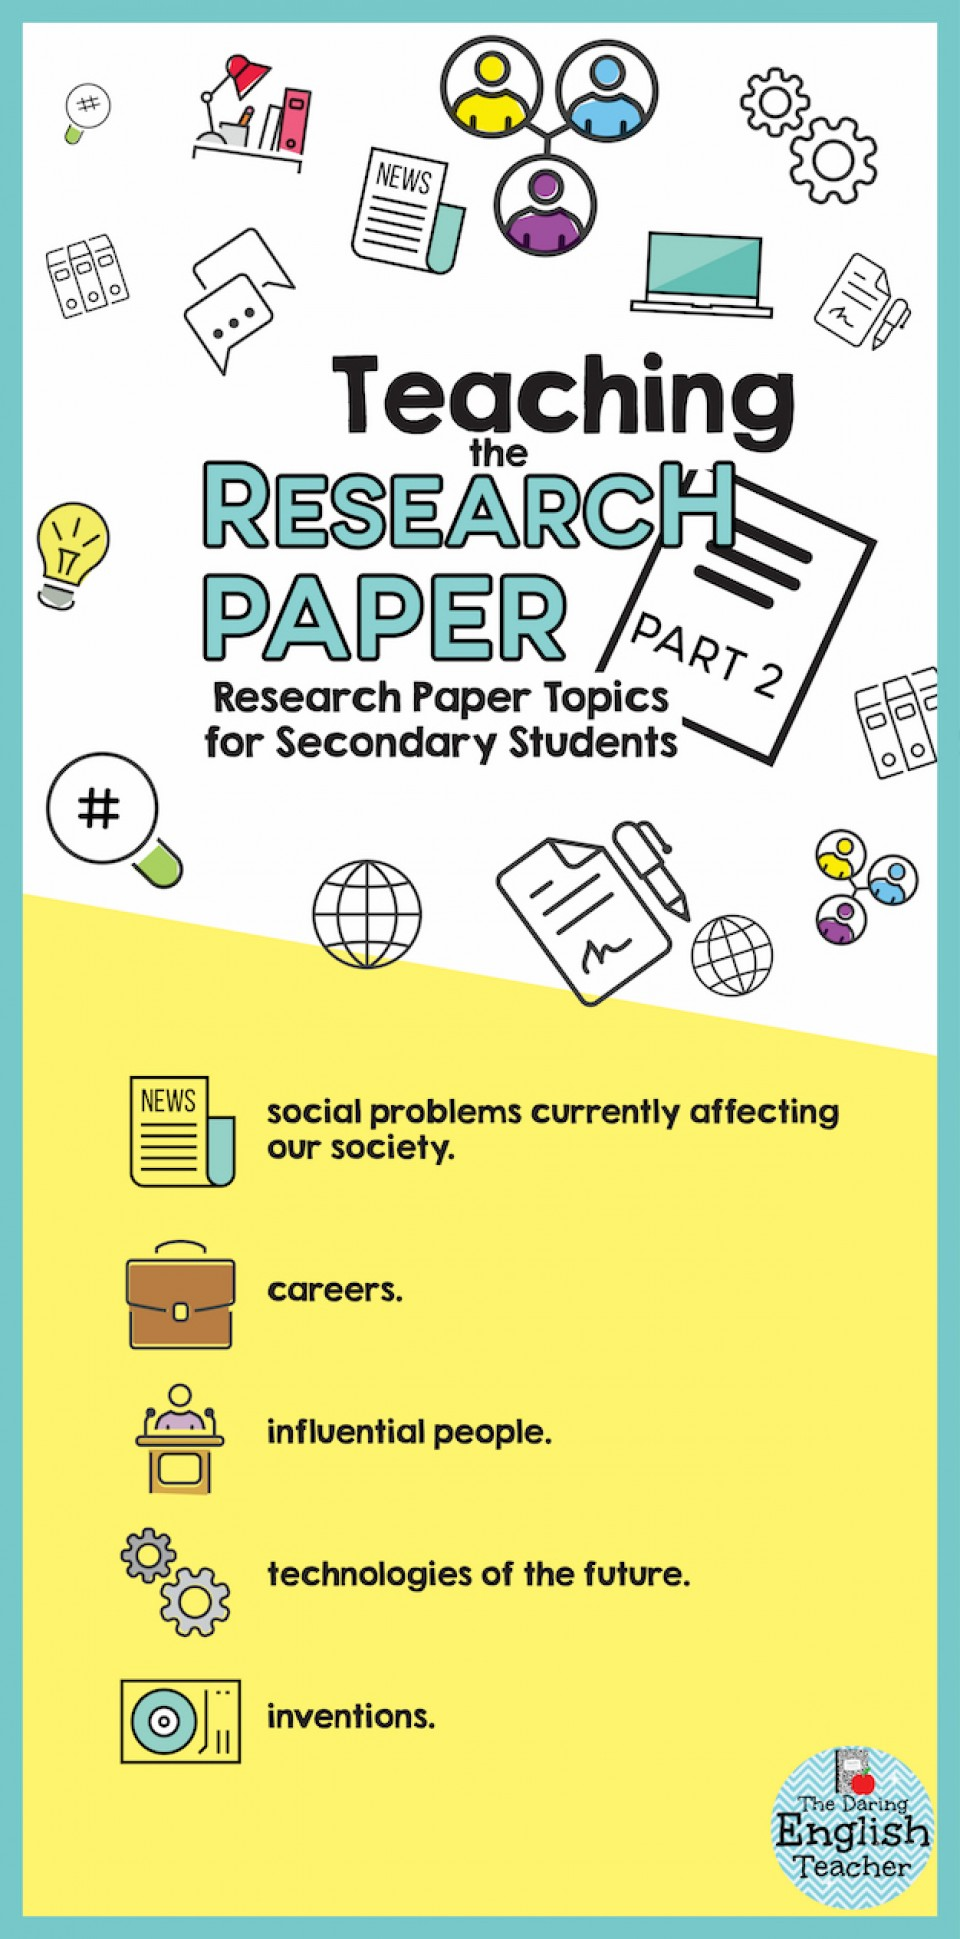 020 Infographic2bp22b2 Research Paper Topic For Unusual A Topics In Psychology List Of On Education 960